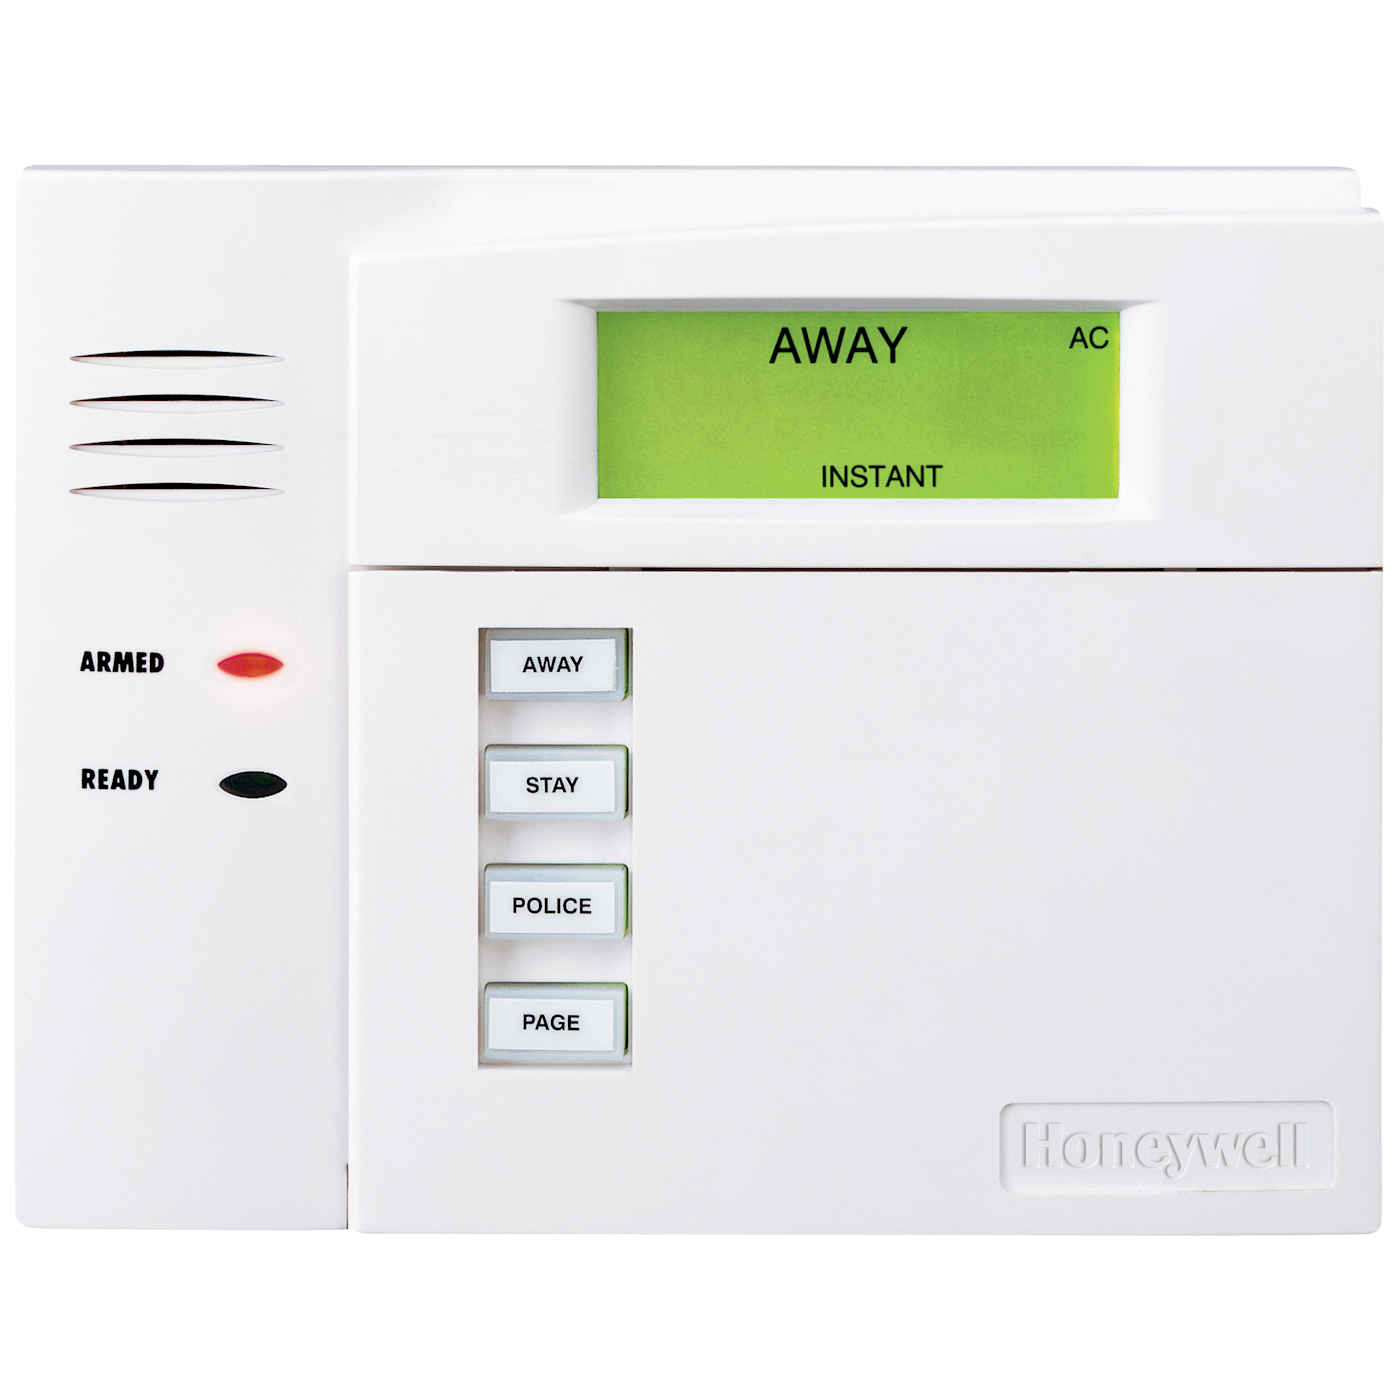 6150 honeywell fixed english display hardwired alarm keypad w rh alarmclub com Honeywell Security Manuals 6150 6160 Honeywell 6150 User Manual